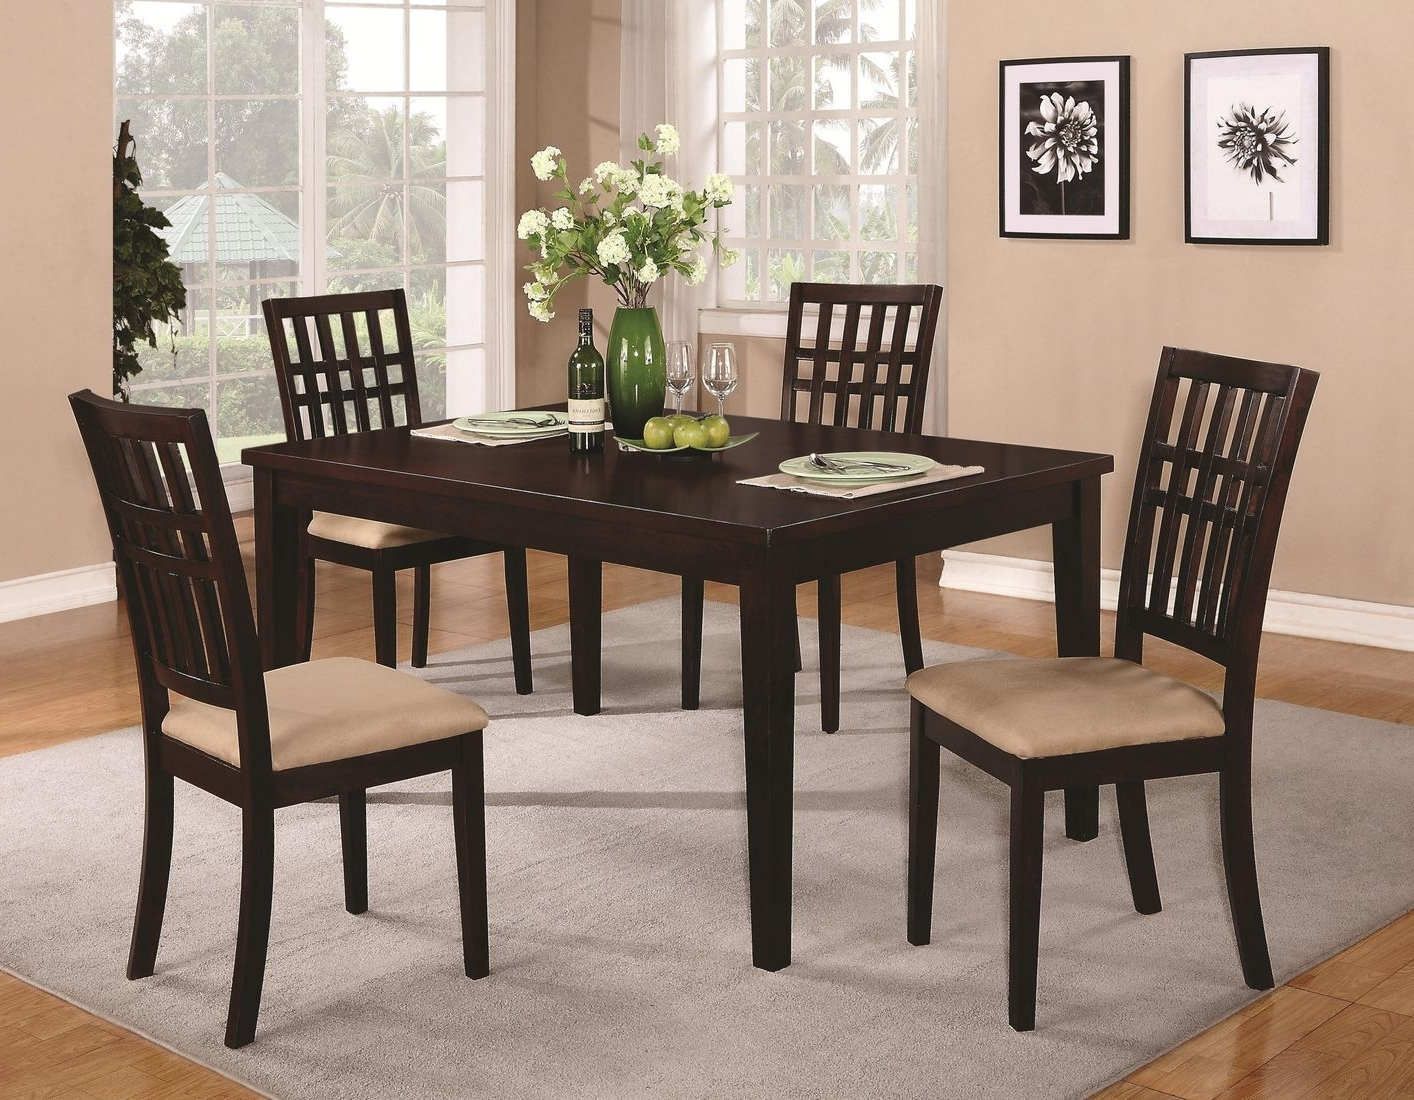 2018 Dark Wooden Dining Tables pertaining to Brandt Dark Cherry Wood Dining Table - Steal-A-Sofa Furniture Outlet